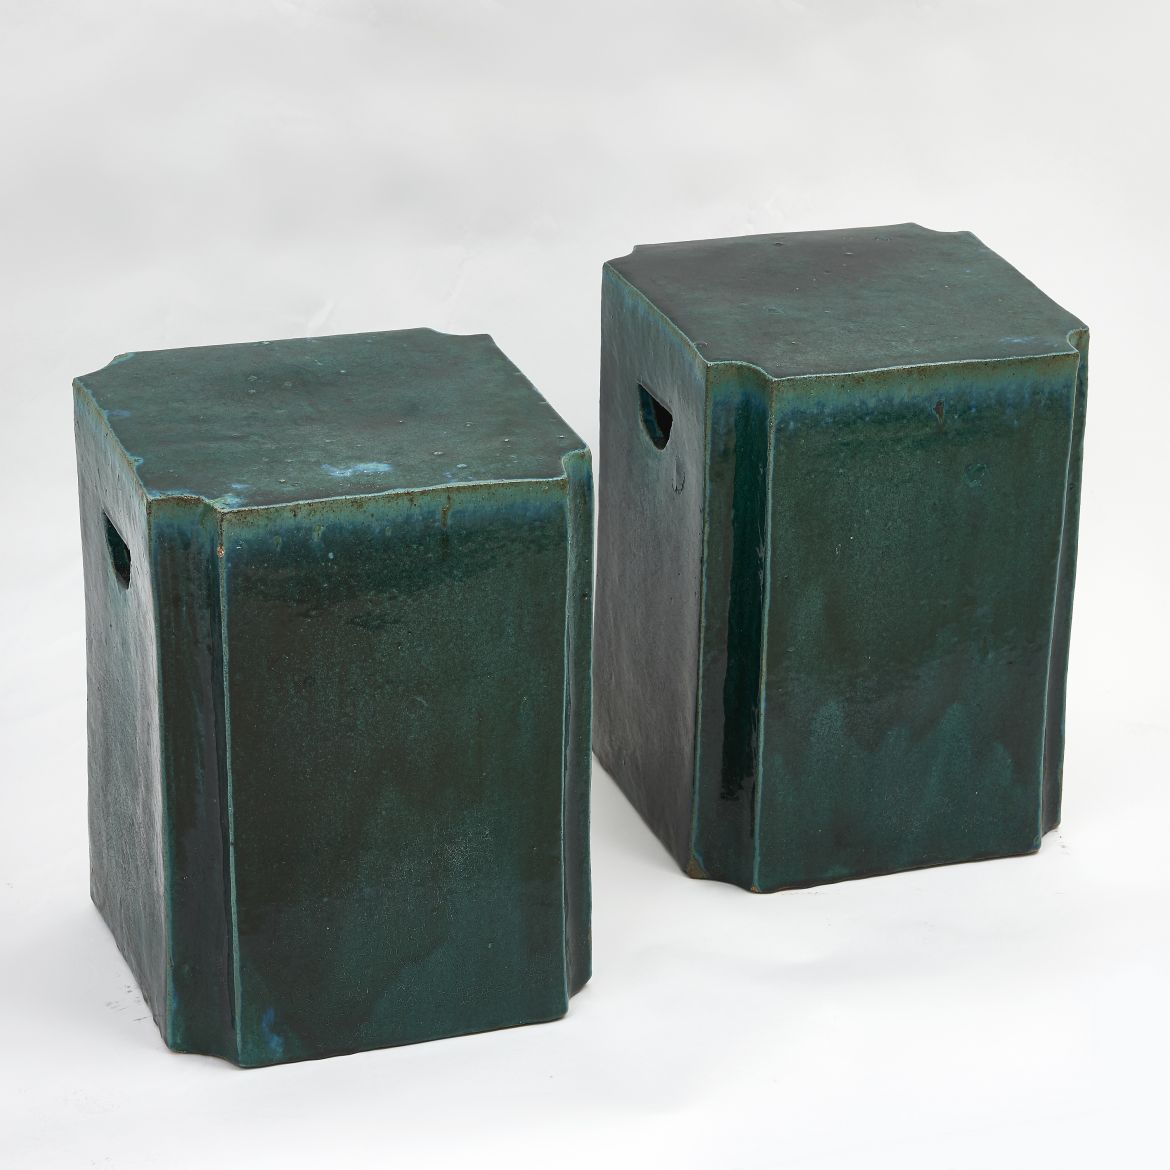 Chinese Green Canted Corner Stools